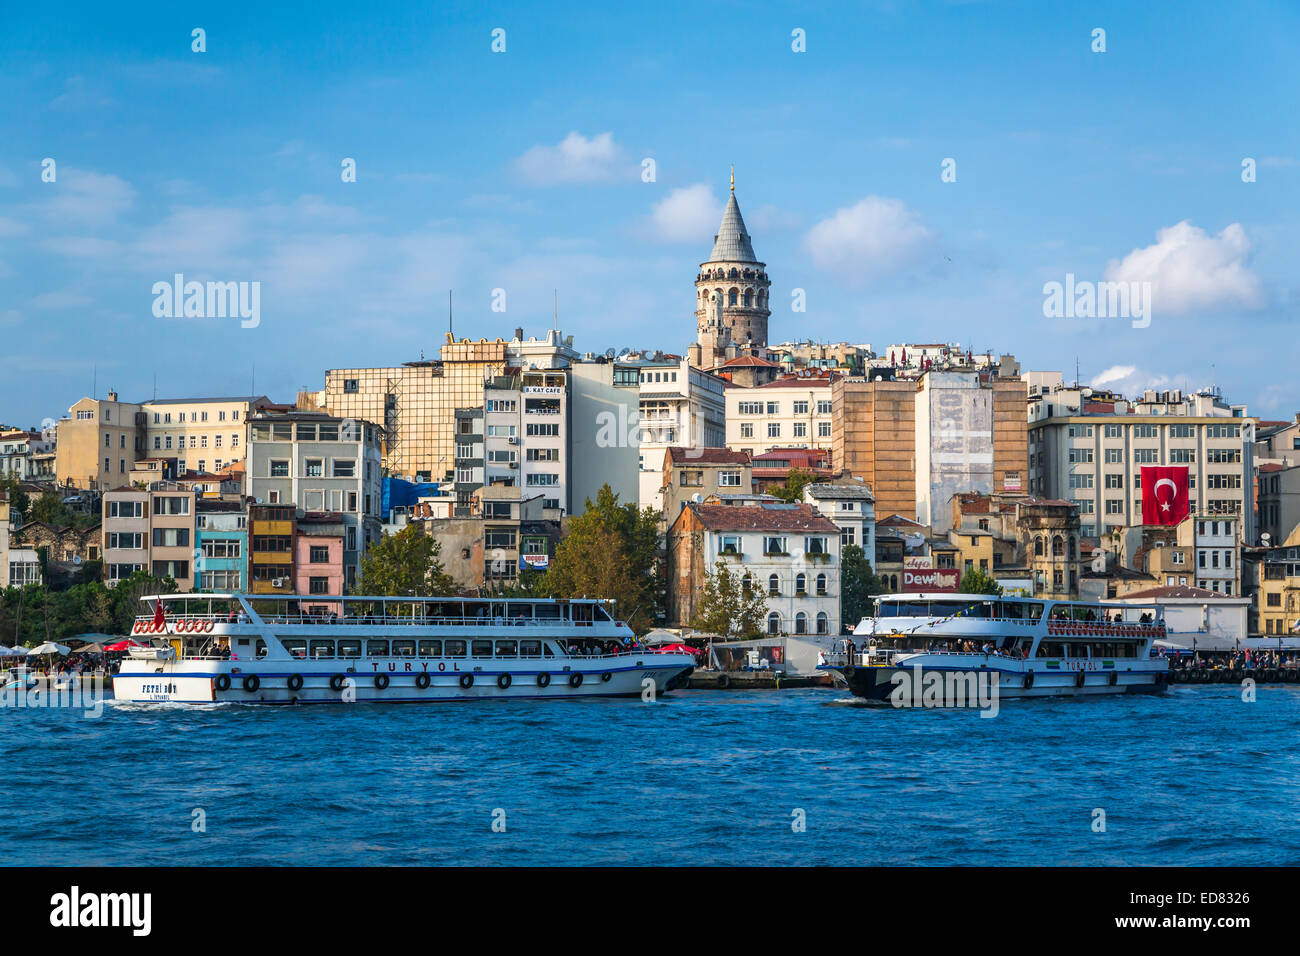 Passenger ferries and water taxis in the Golden Horn waterway with the Galata Tower in Istanbul, Turkey, Eurasia. - Stock Image